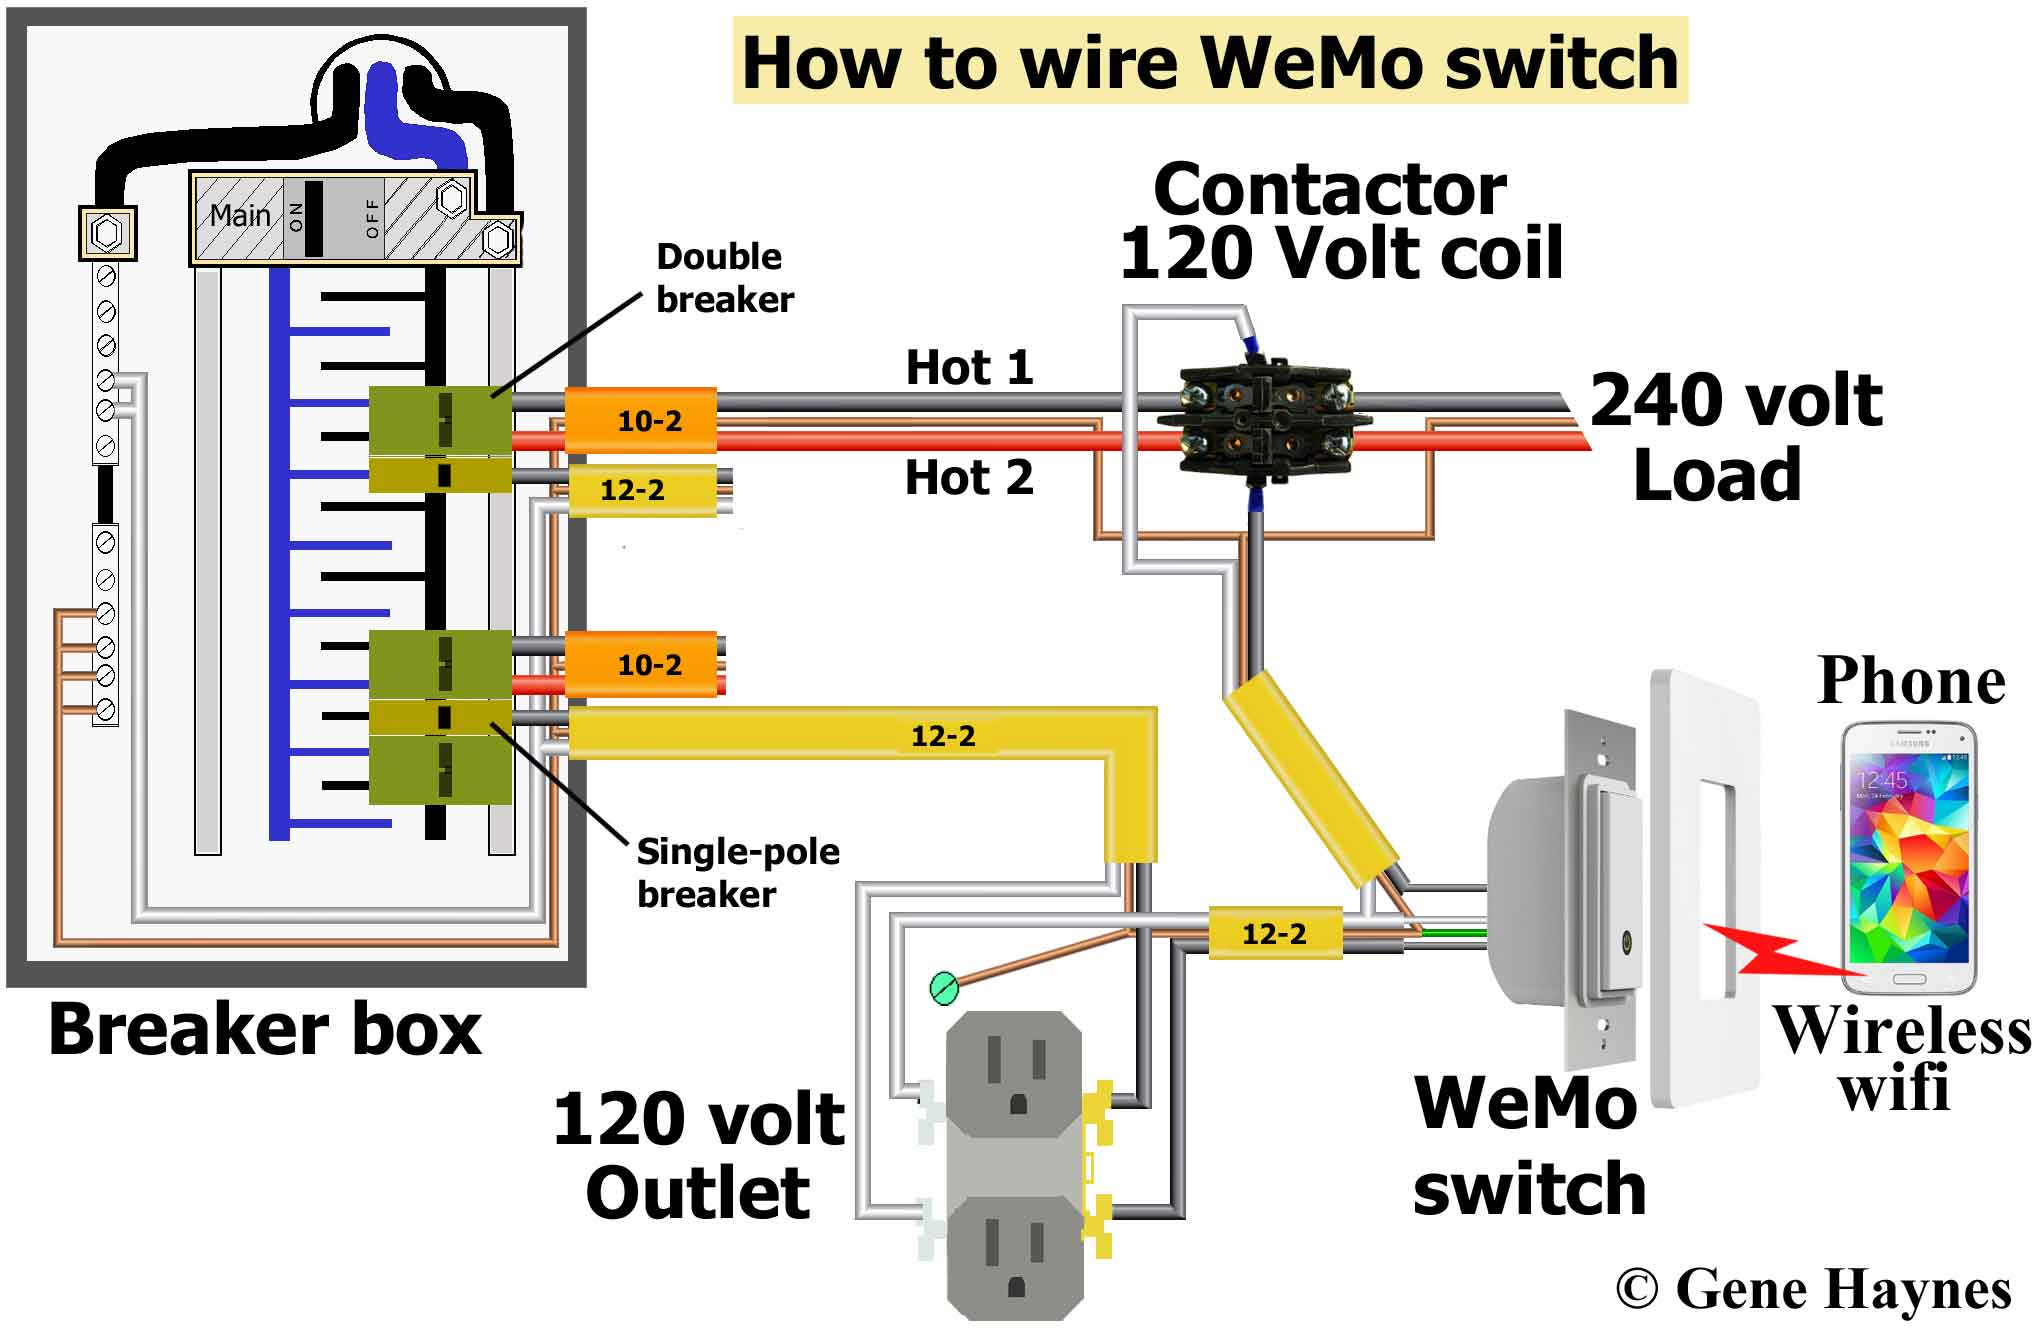 Wemo Switch Wiring New Era Of Diagram R6 Control 240 Volt With Rh Waterheatertimer Org Belkin Dimmer